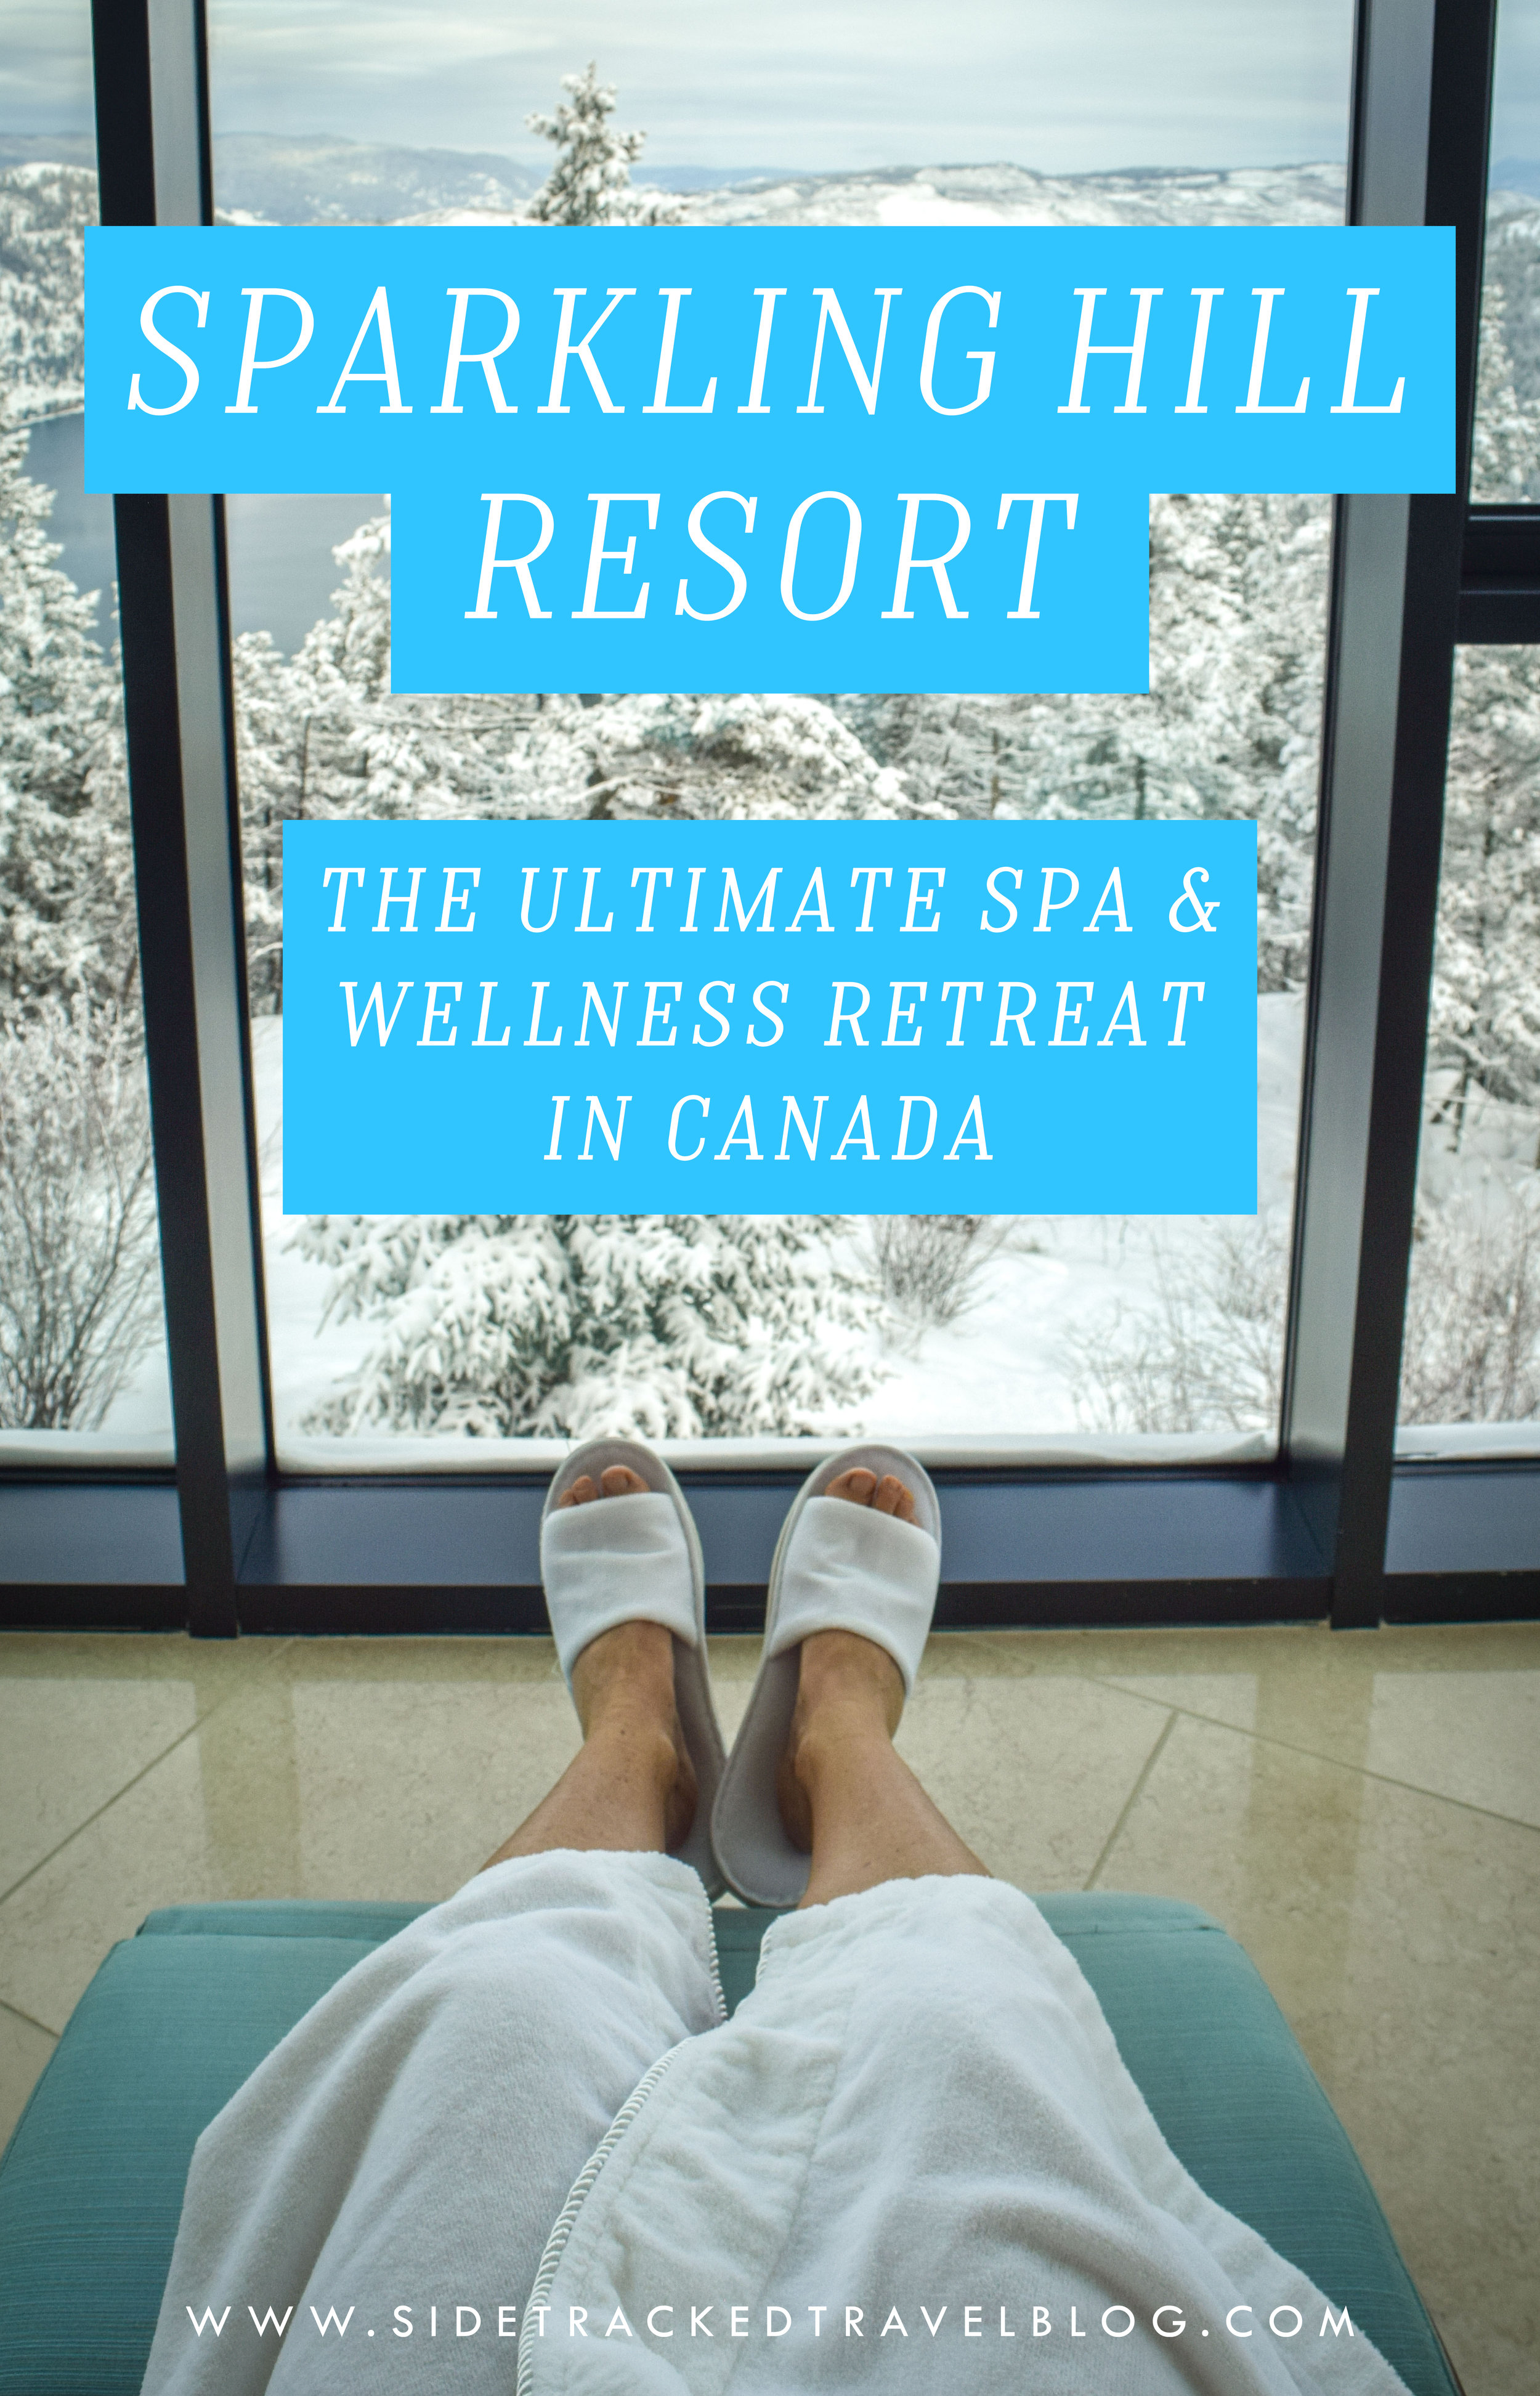 The unique mix of down-to-earth charm with grandeur makes Sparkling Hill Resort a total knockout. Aromatic saunas, outdoor infinity pools, and Swarovski crystals - here's everything you need to know about a perfect and relaxing weekend at Canada's premier spa and wellness destination.